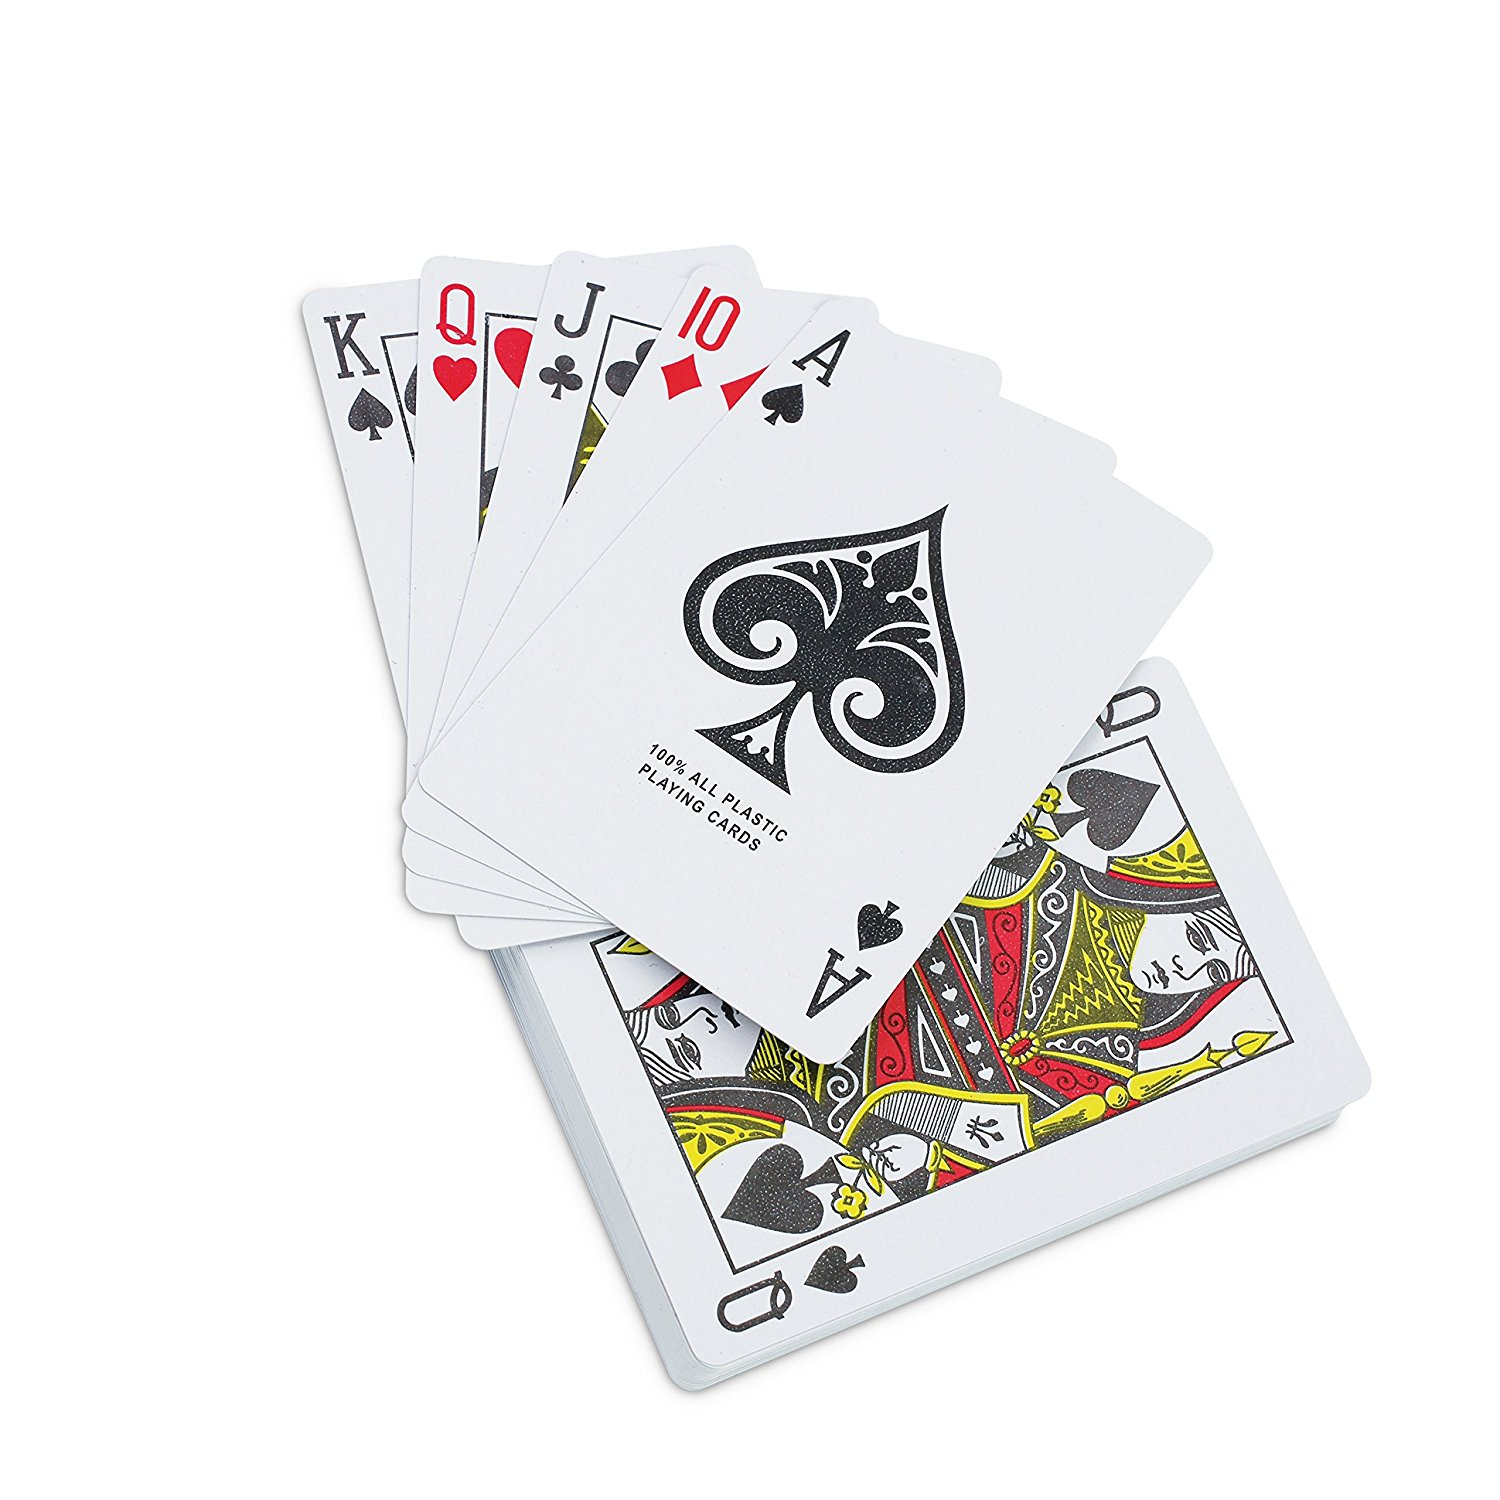 Waterproof Playing Cards In Plastic Case KOVOT